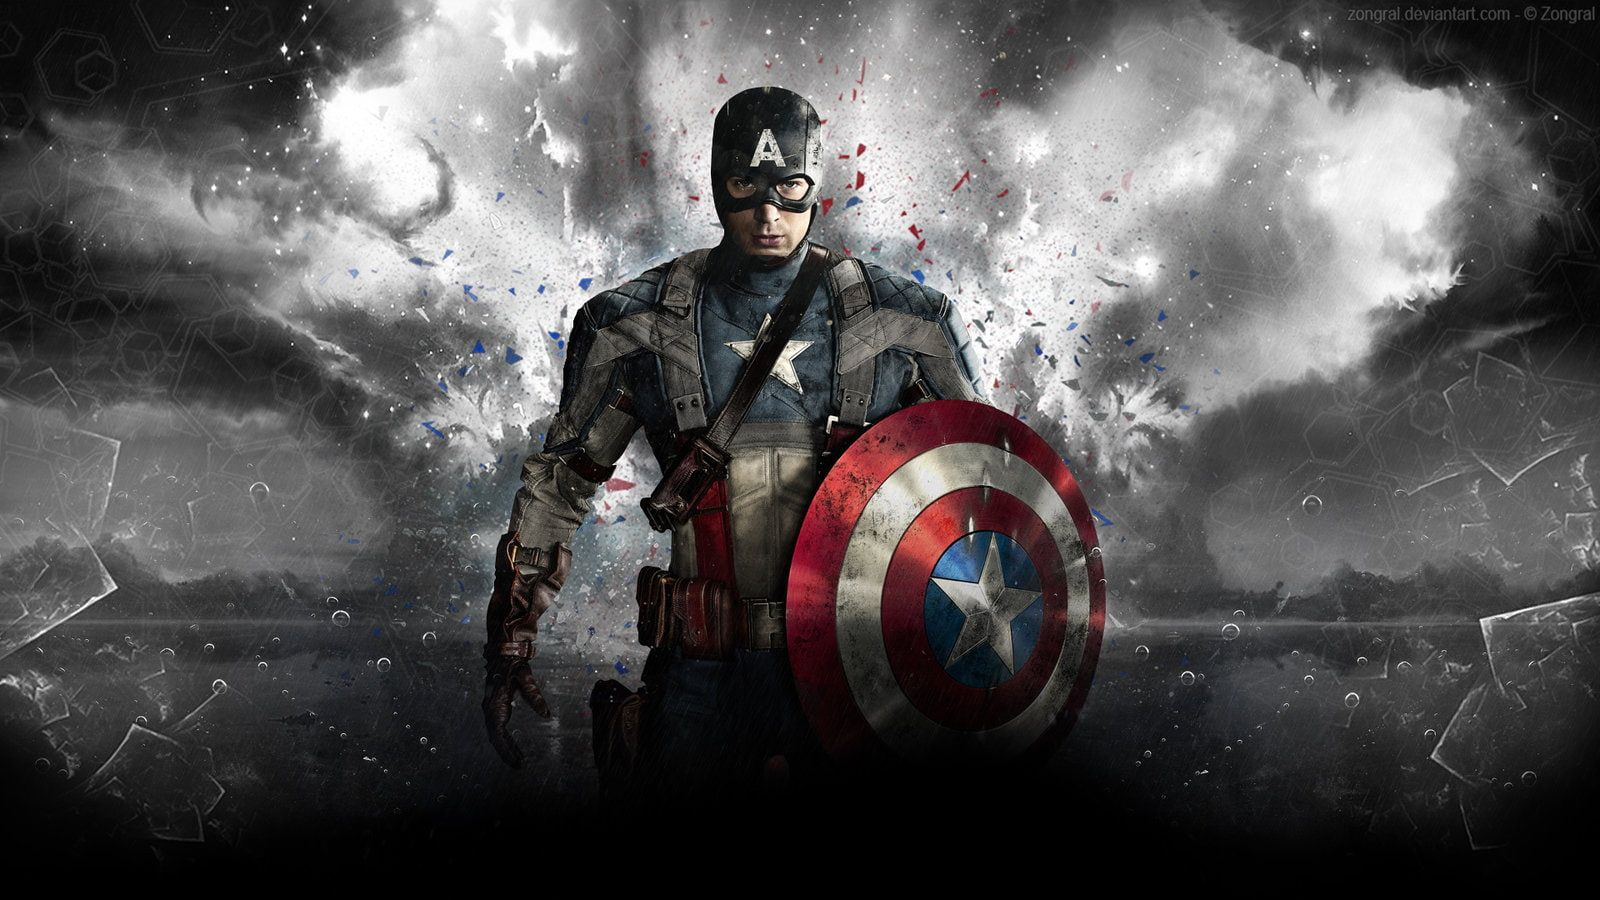 Captain America Shield Marvel Chris Evans Hd Movies Marvel America Captain Shield Chris Captain America Wallpaper Hd Wallpapers For Pc Avengers Wallpaper